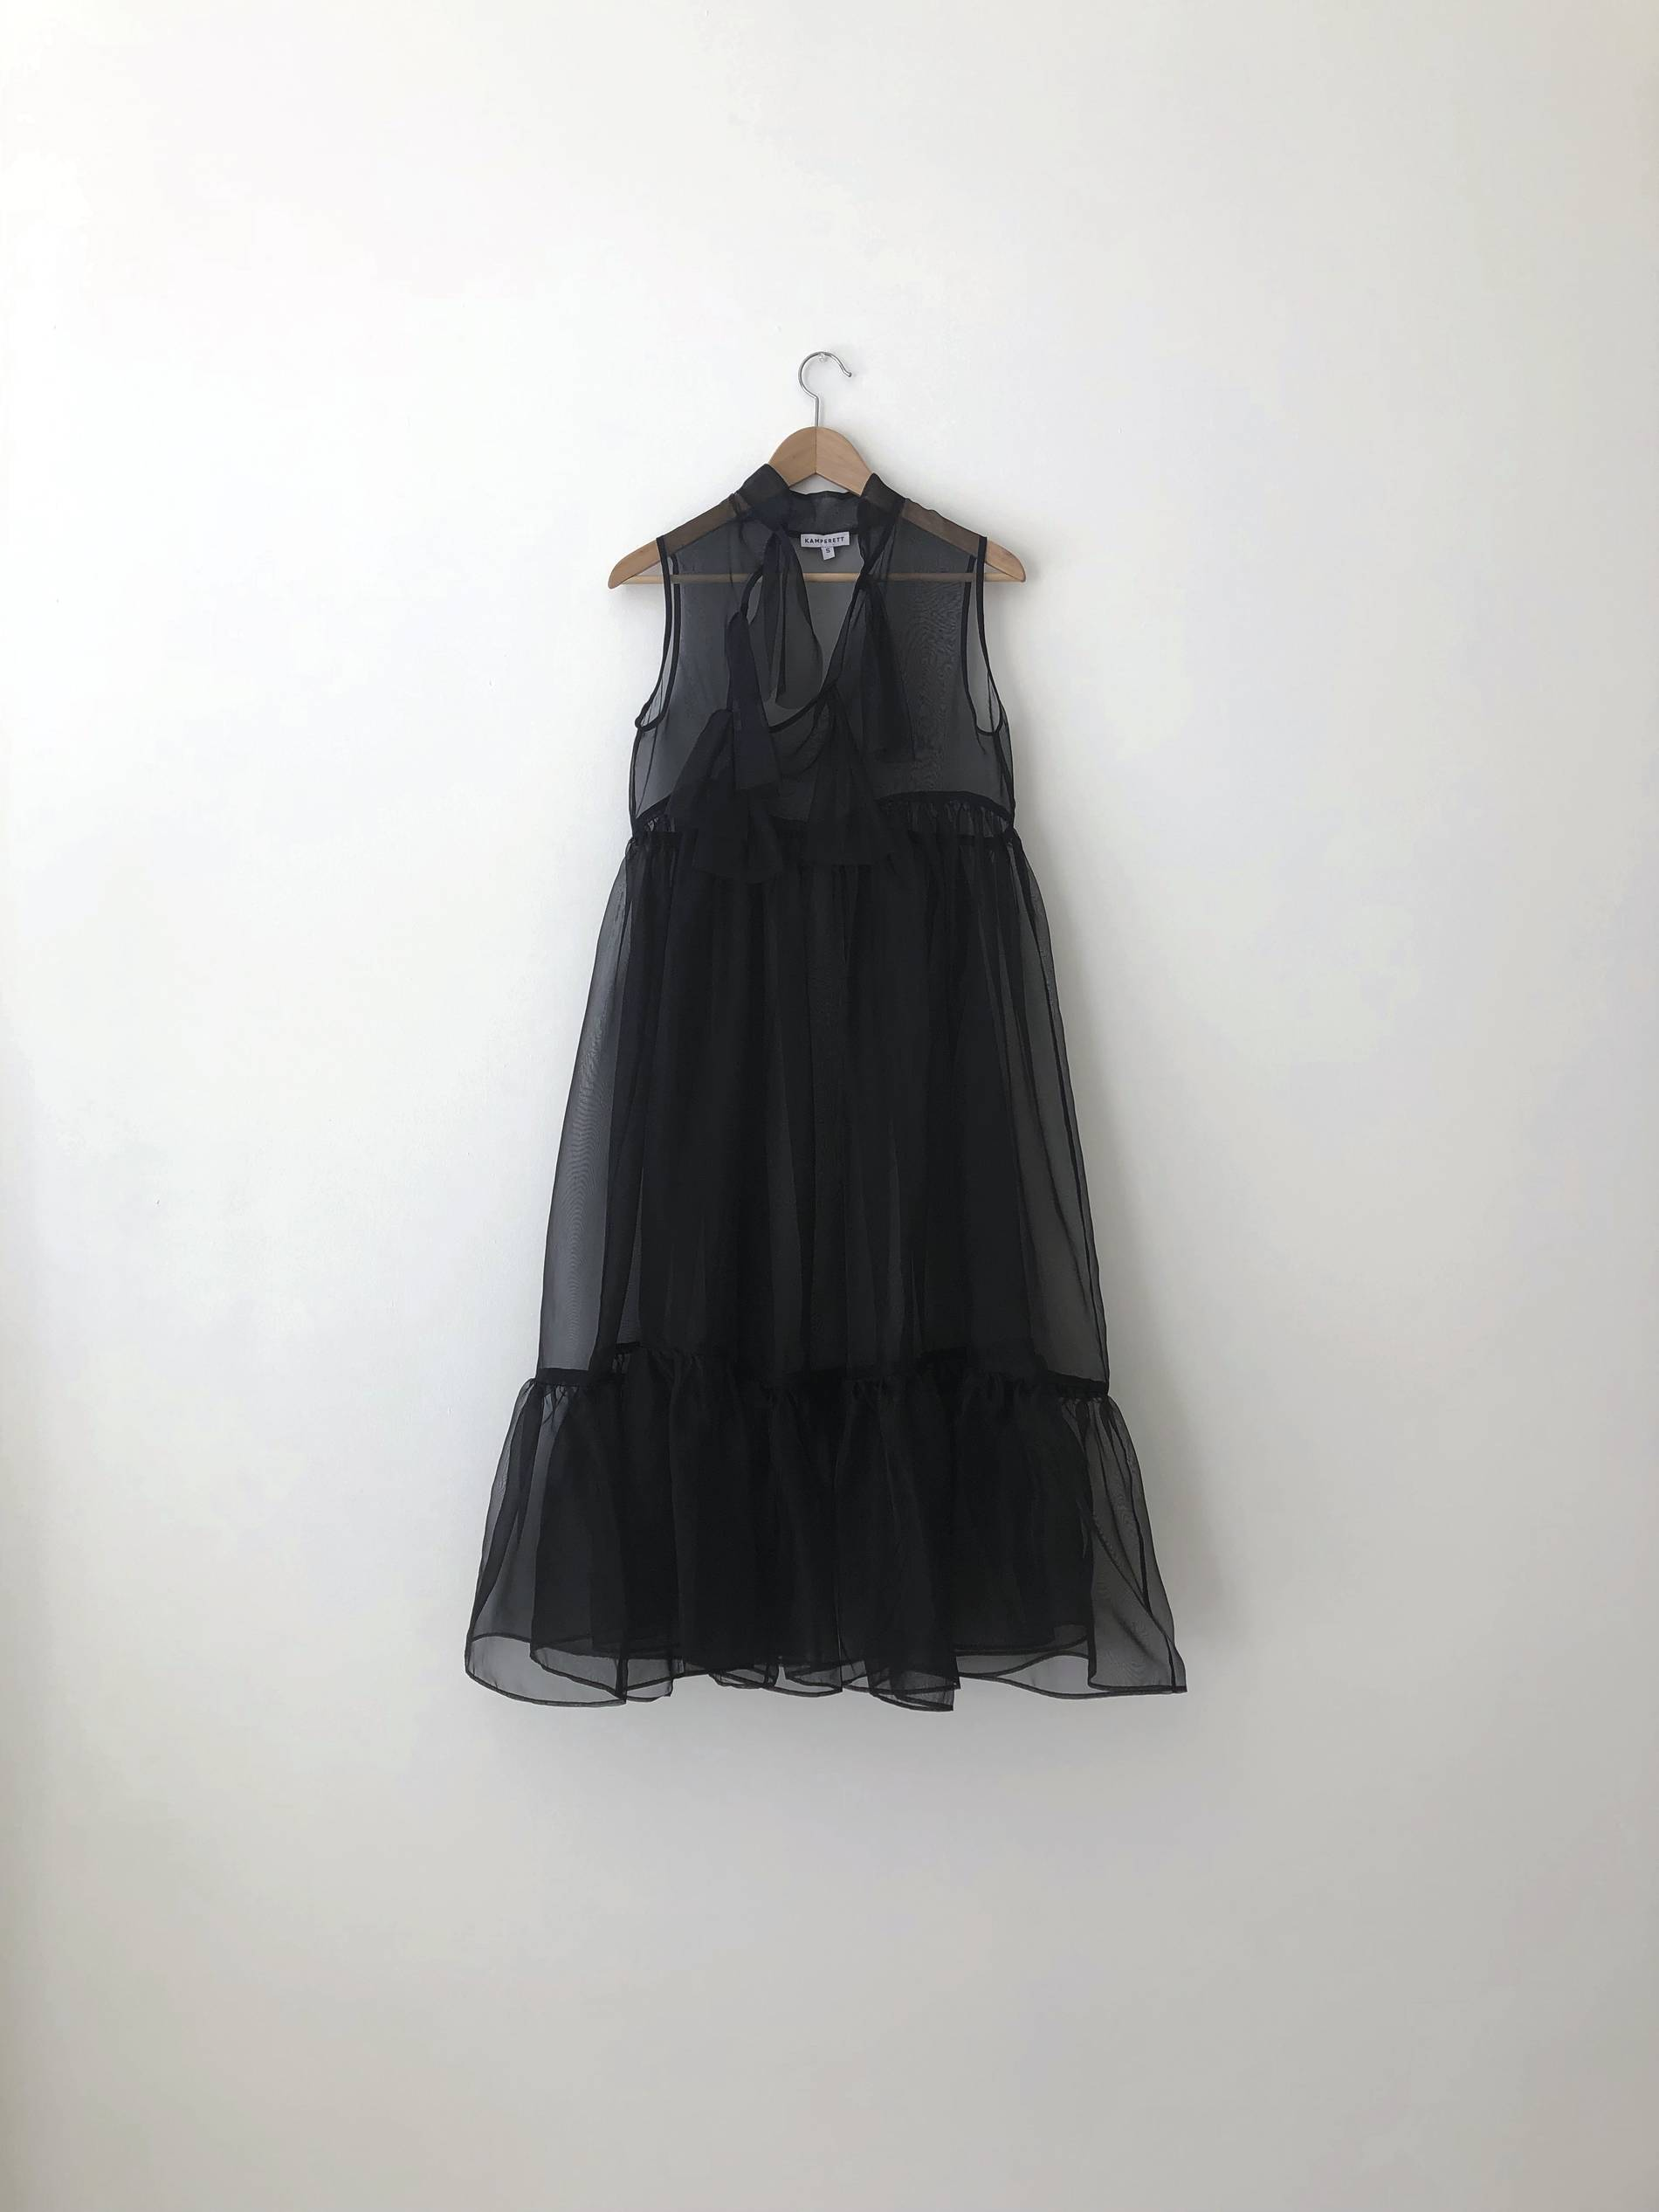 Kamperett Mae dress image